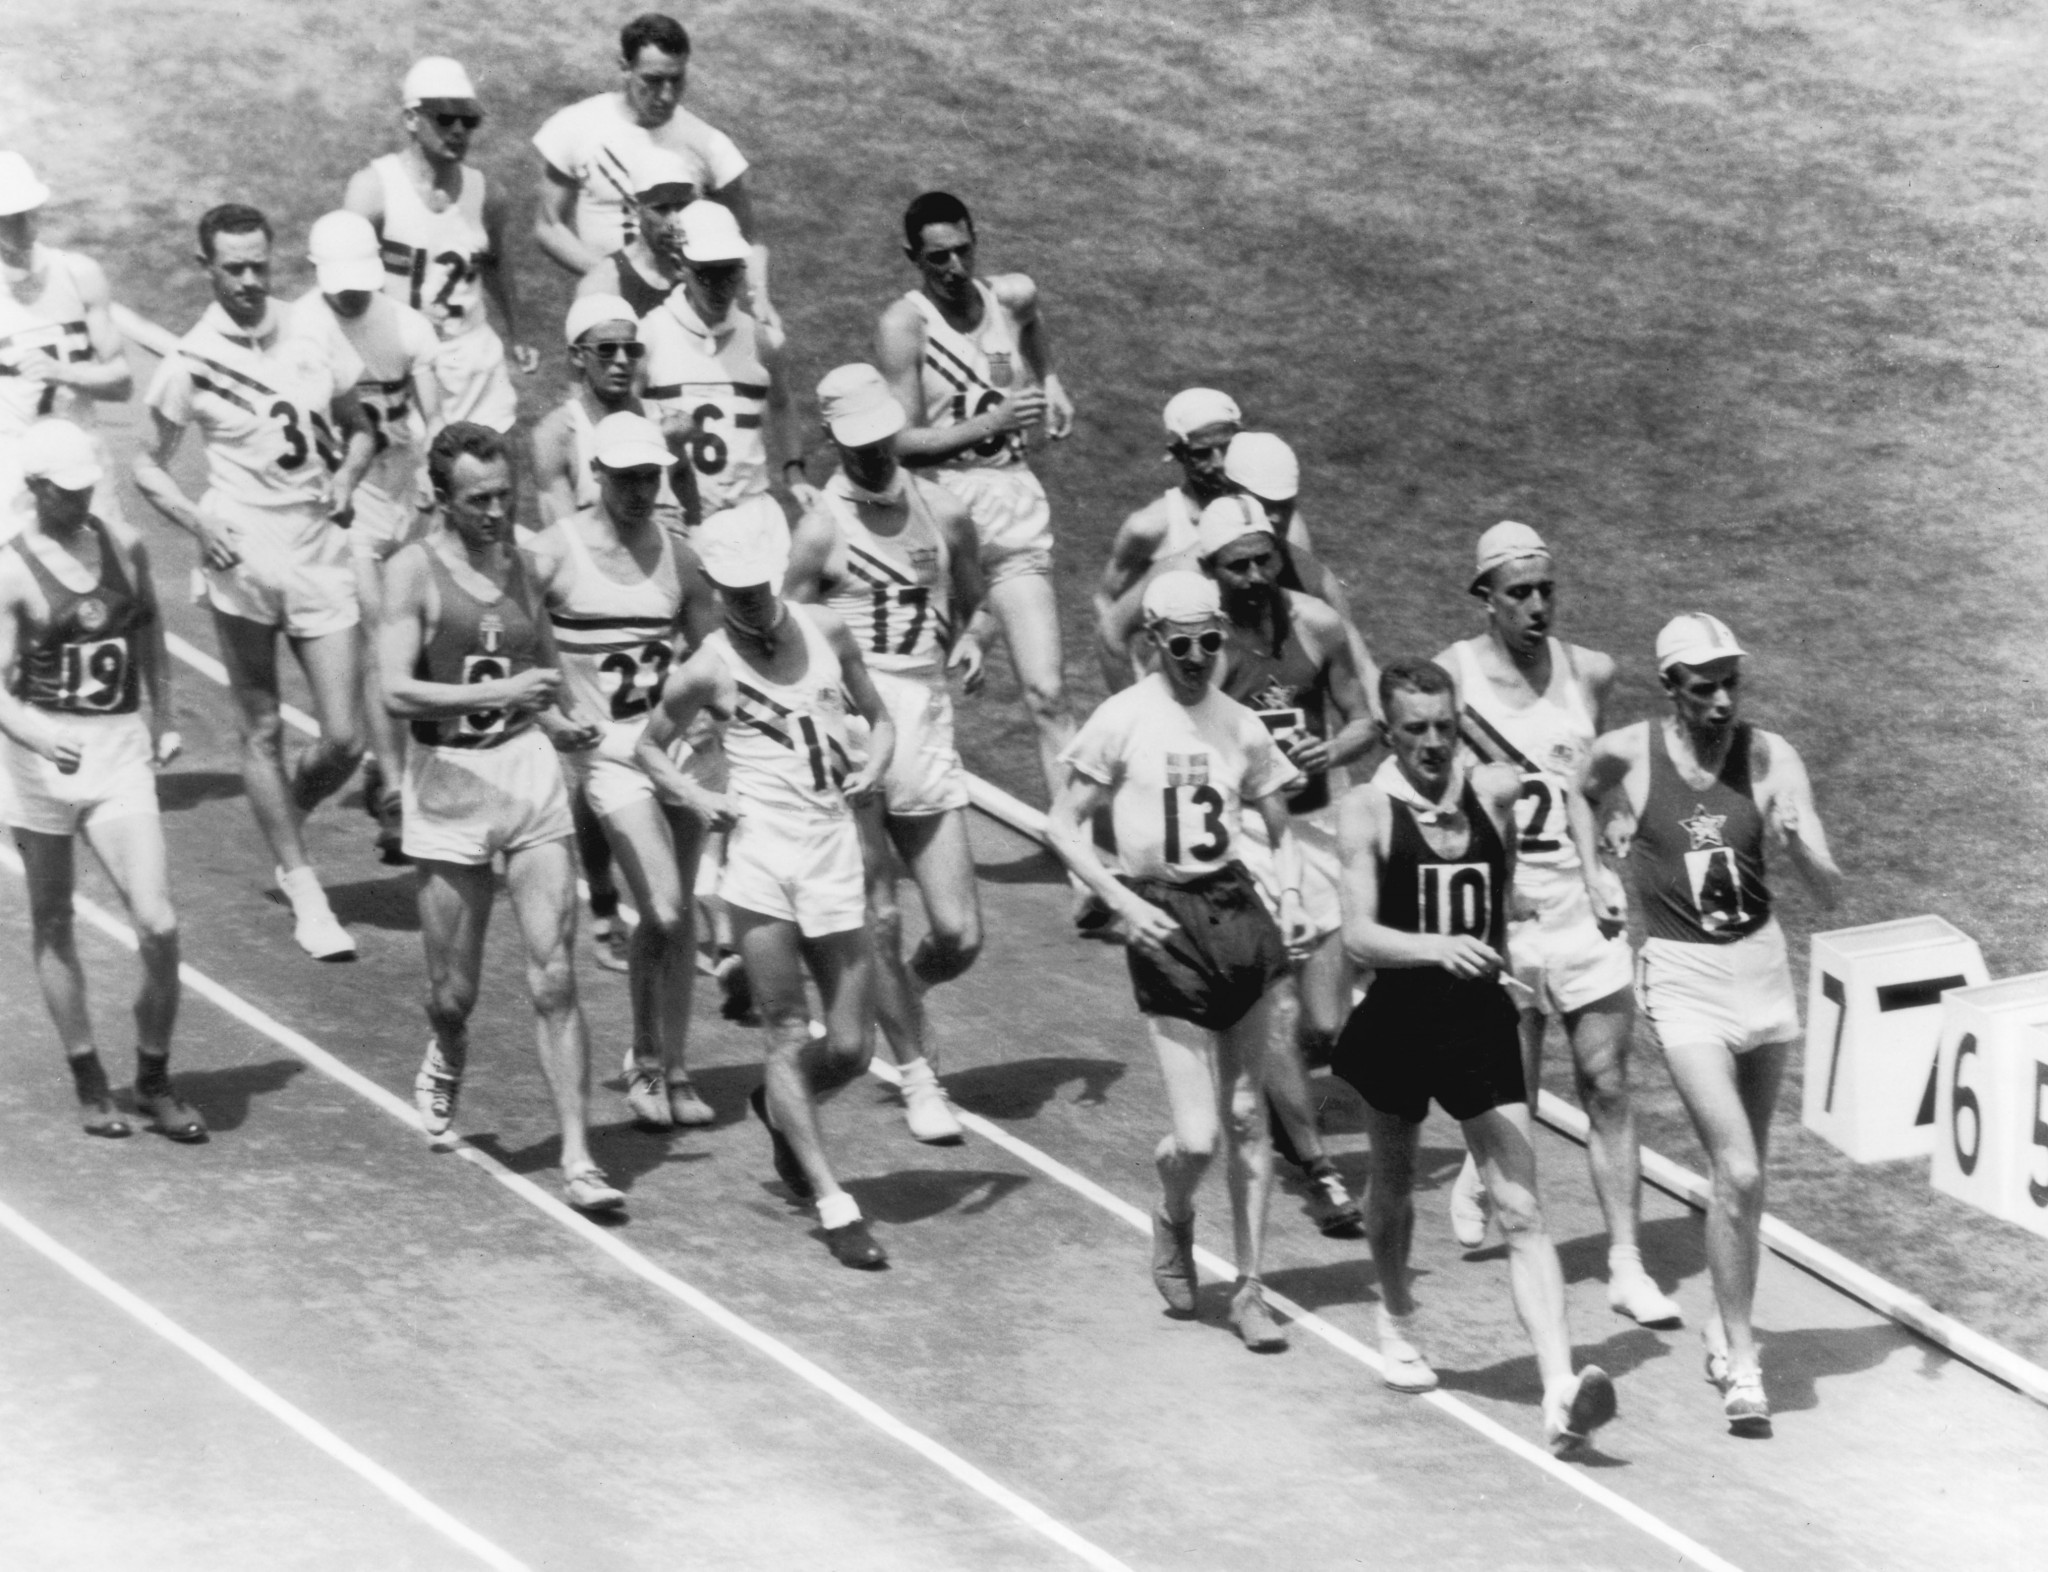 A 50km race walk for men has featured in every Olympic Games since Los Angeles 1932, except at Montreal 1976 ©Getty Images